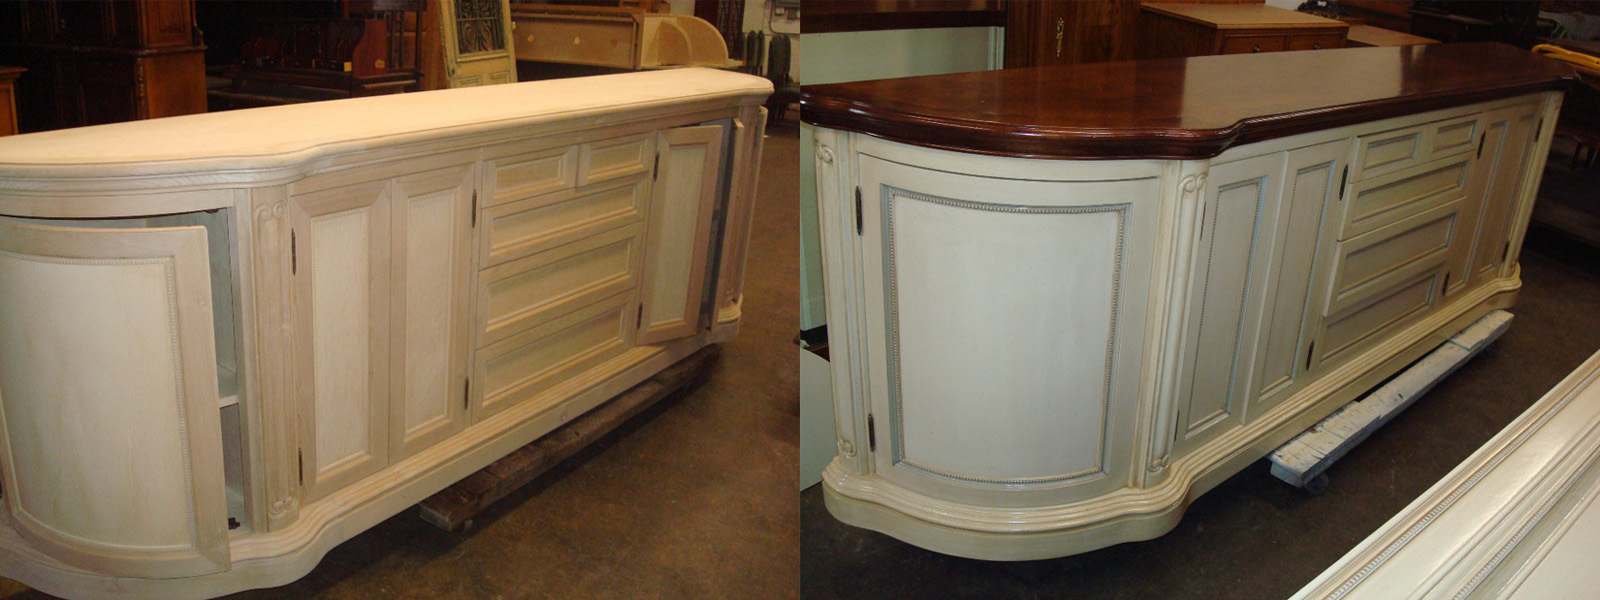 Custom cabinetry refinishing and painting Orange County